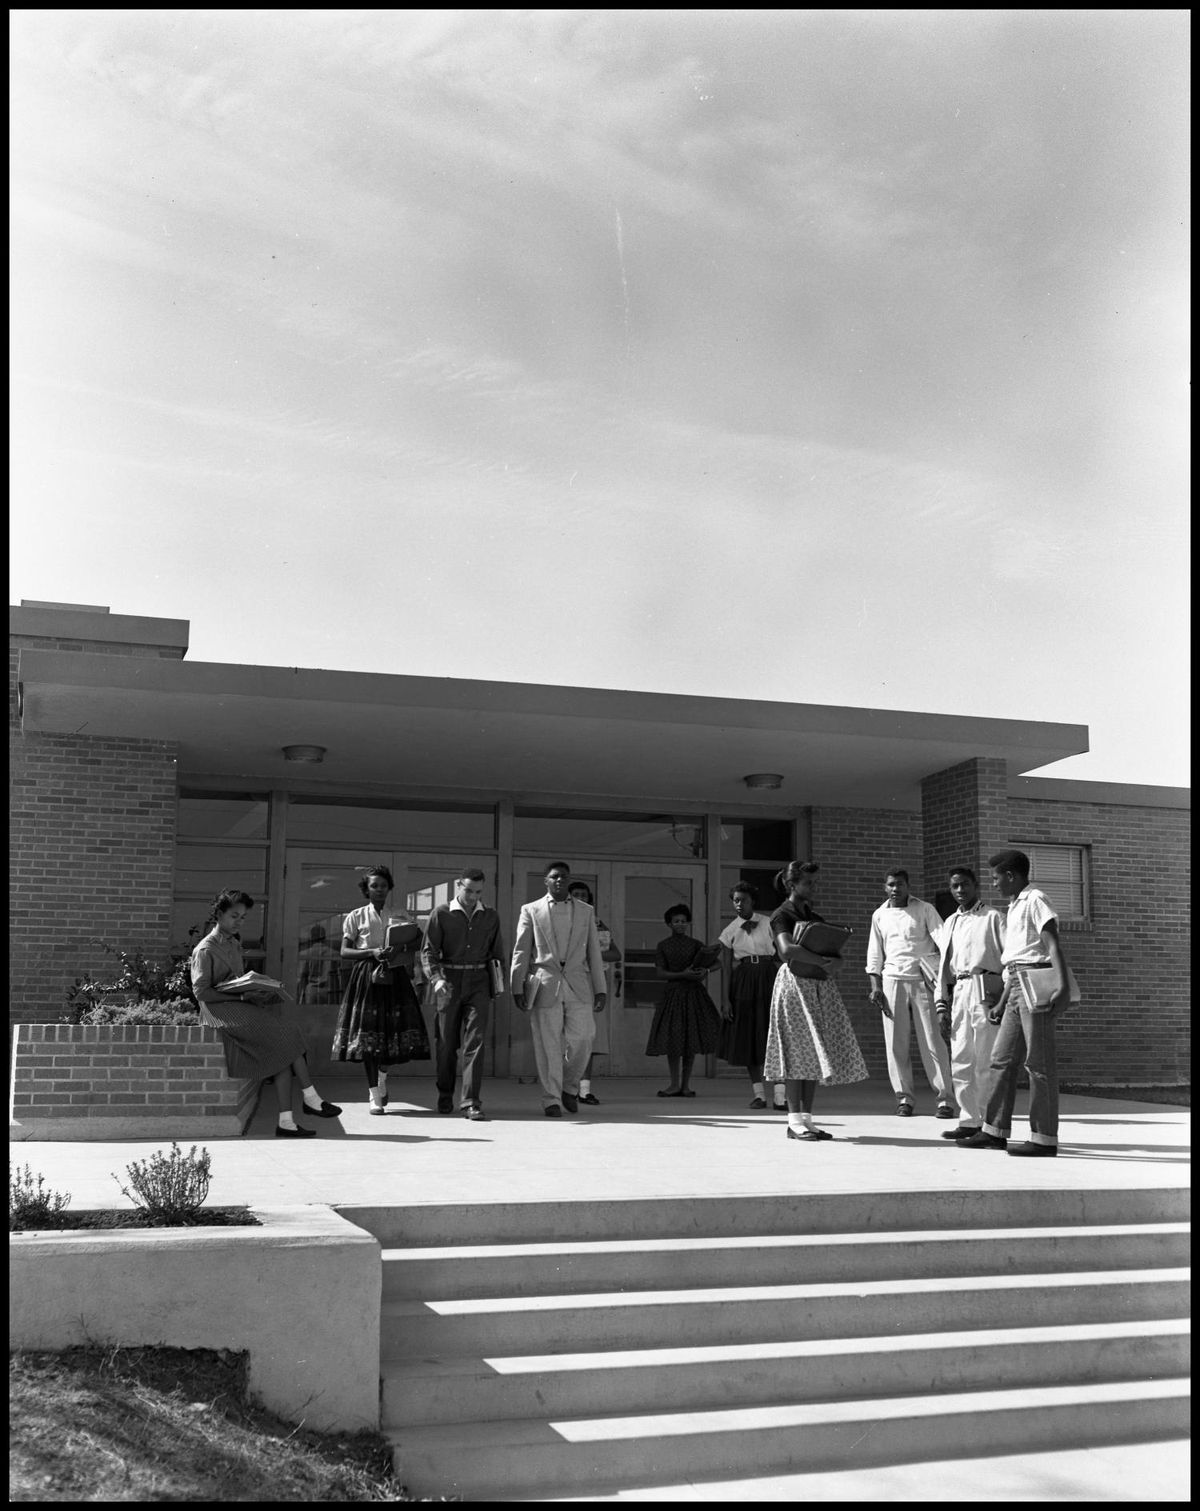 Black and white photo of students hanging out in front of modern-style school building